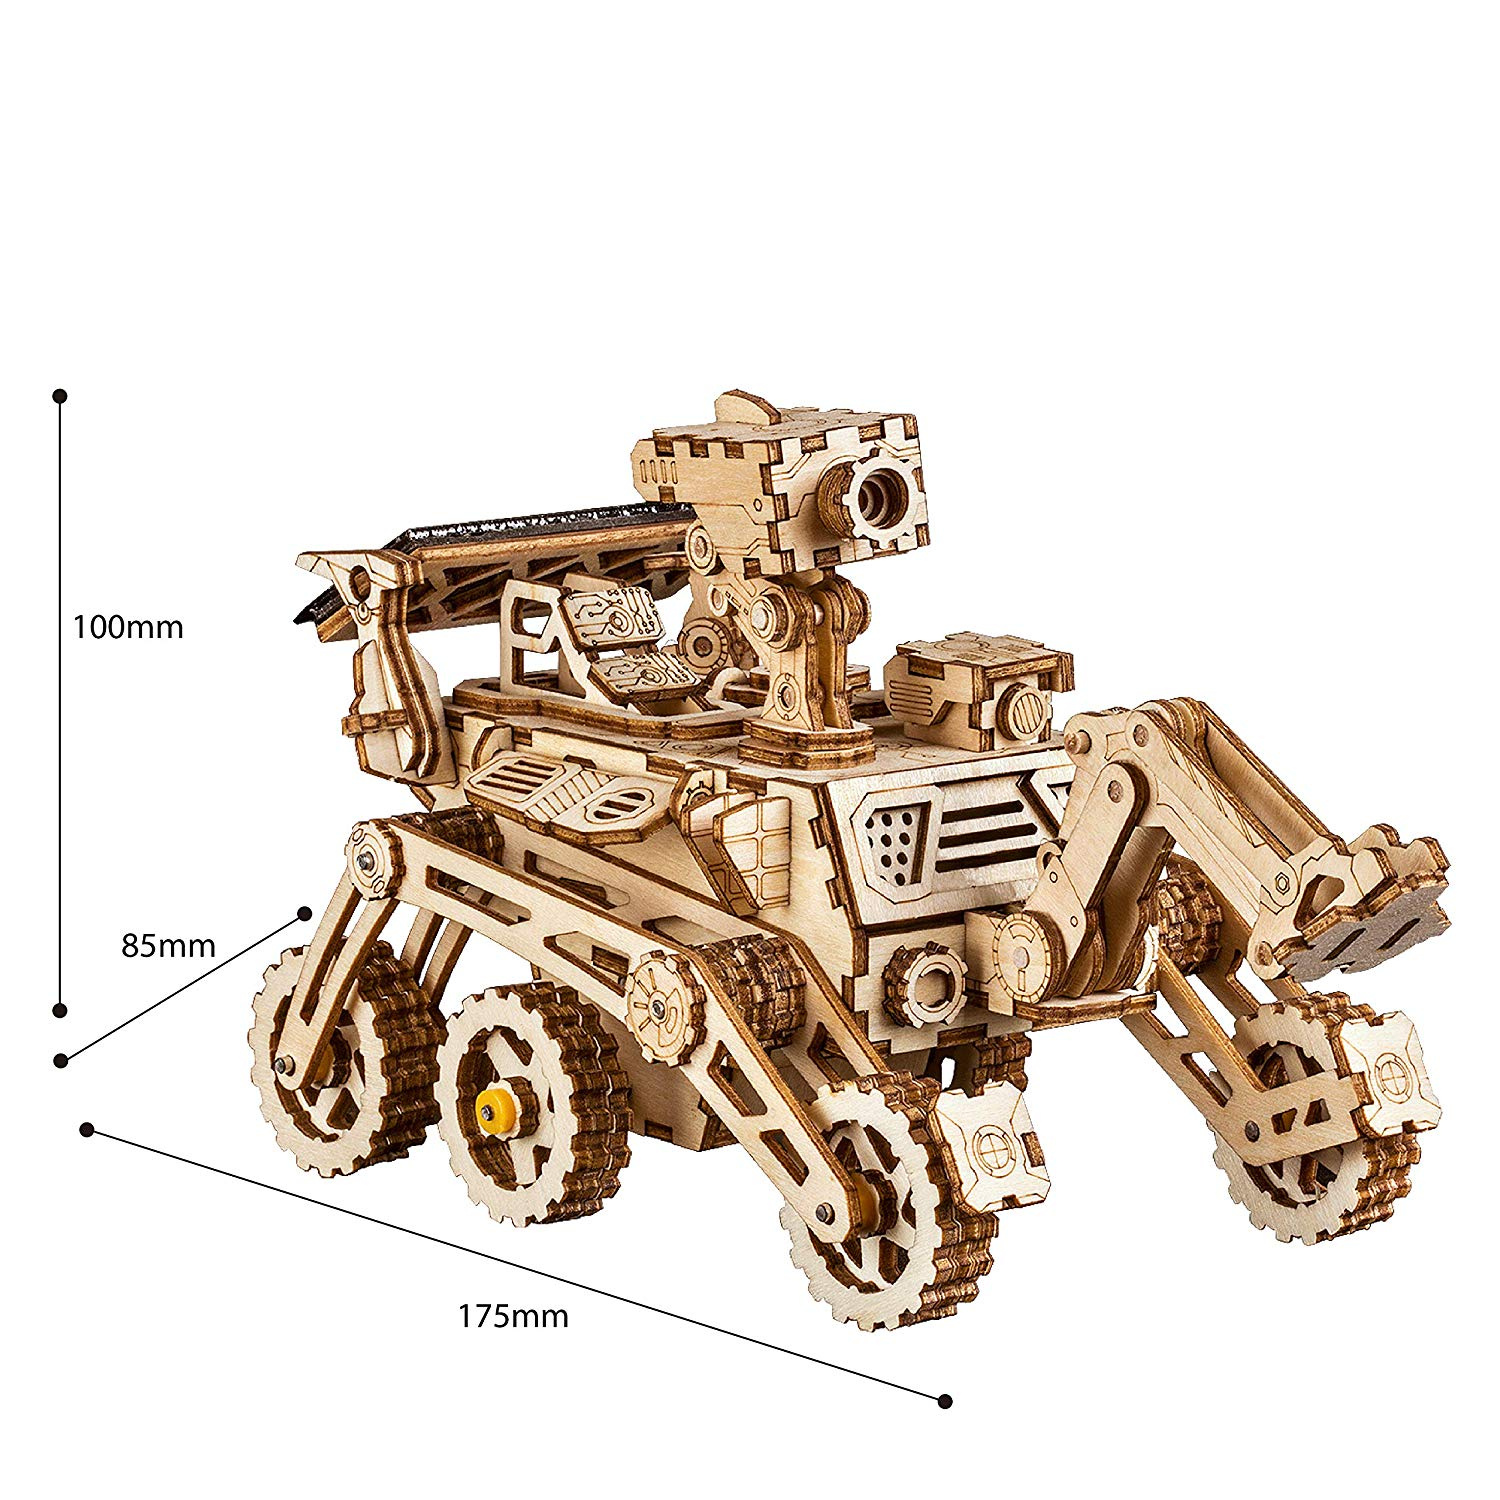 ROKR Mechanical Models,3-D Wooden Puzzle,Solar Energy Powered Cars-Moveable  DIY Assembly Toy,Mechanical Gears Constructor Kits,Brain Teaser,Best Gifts